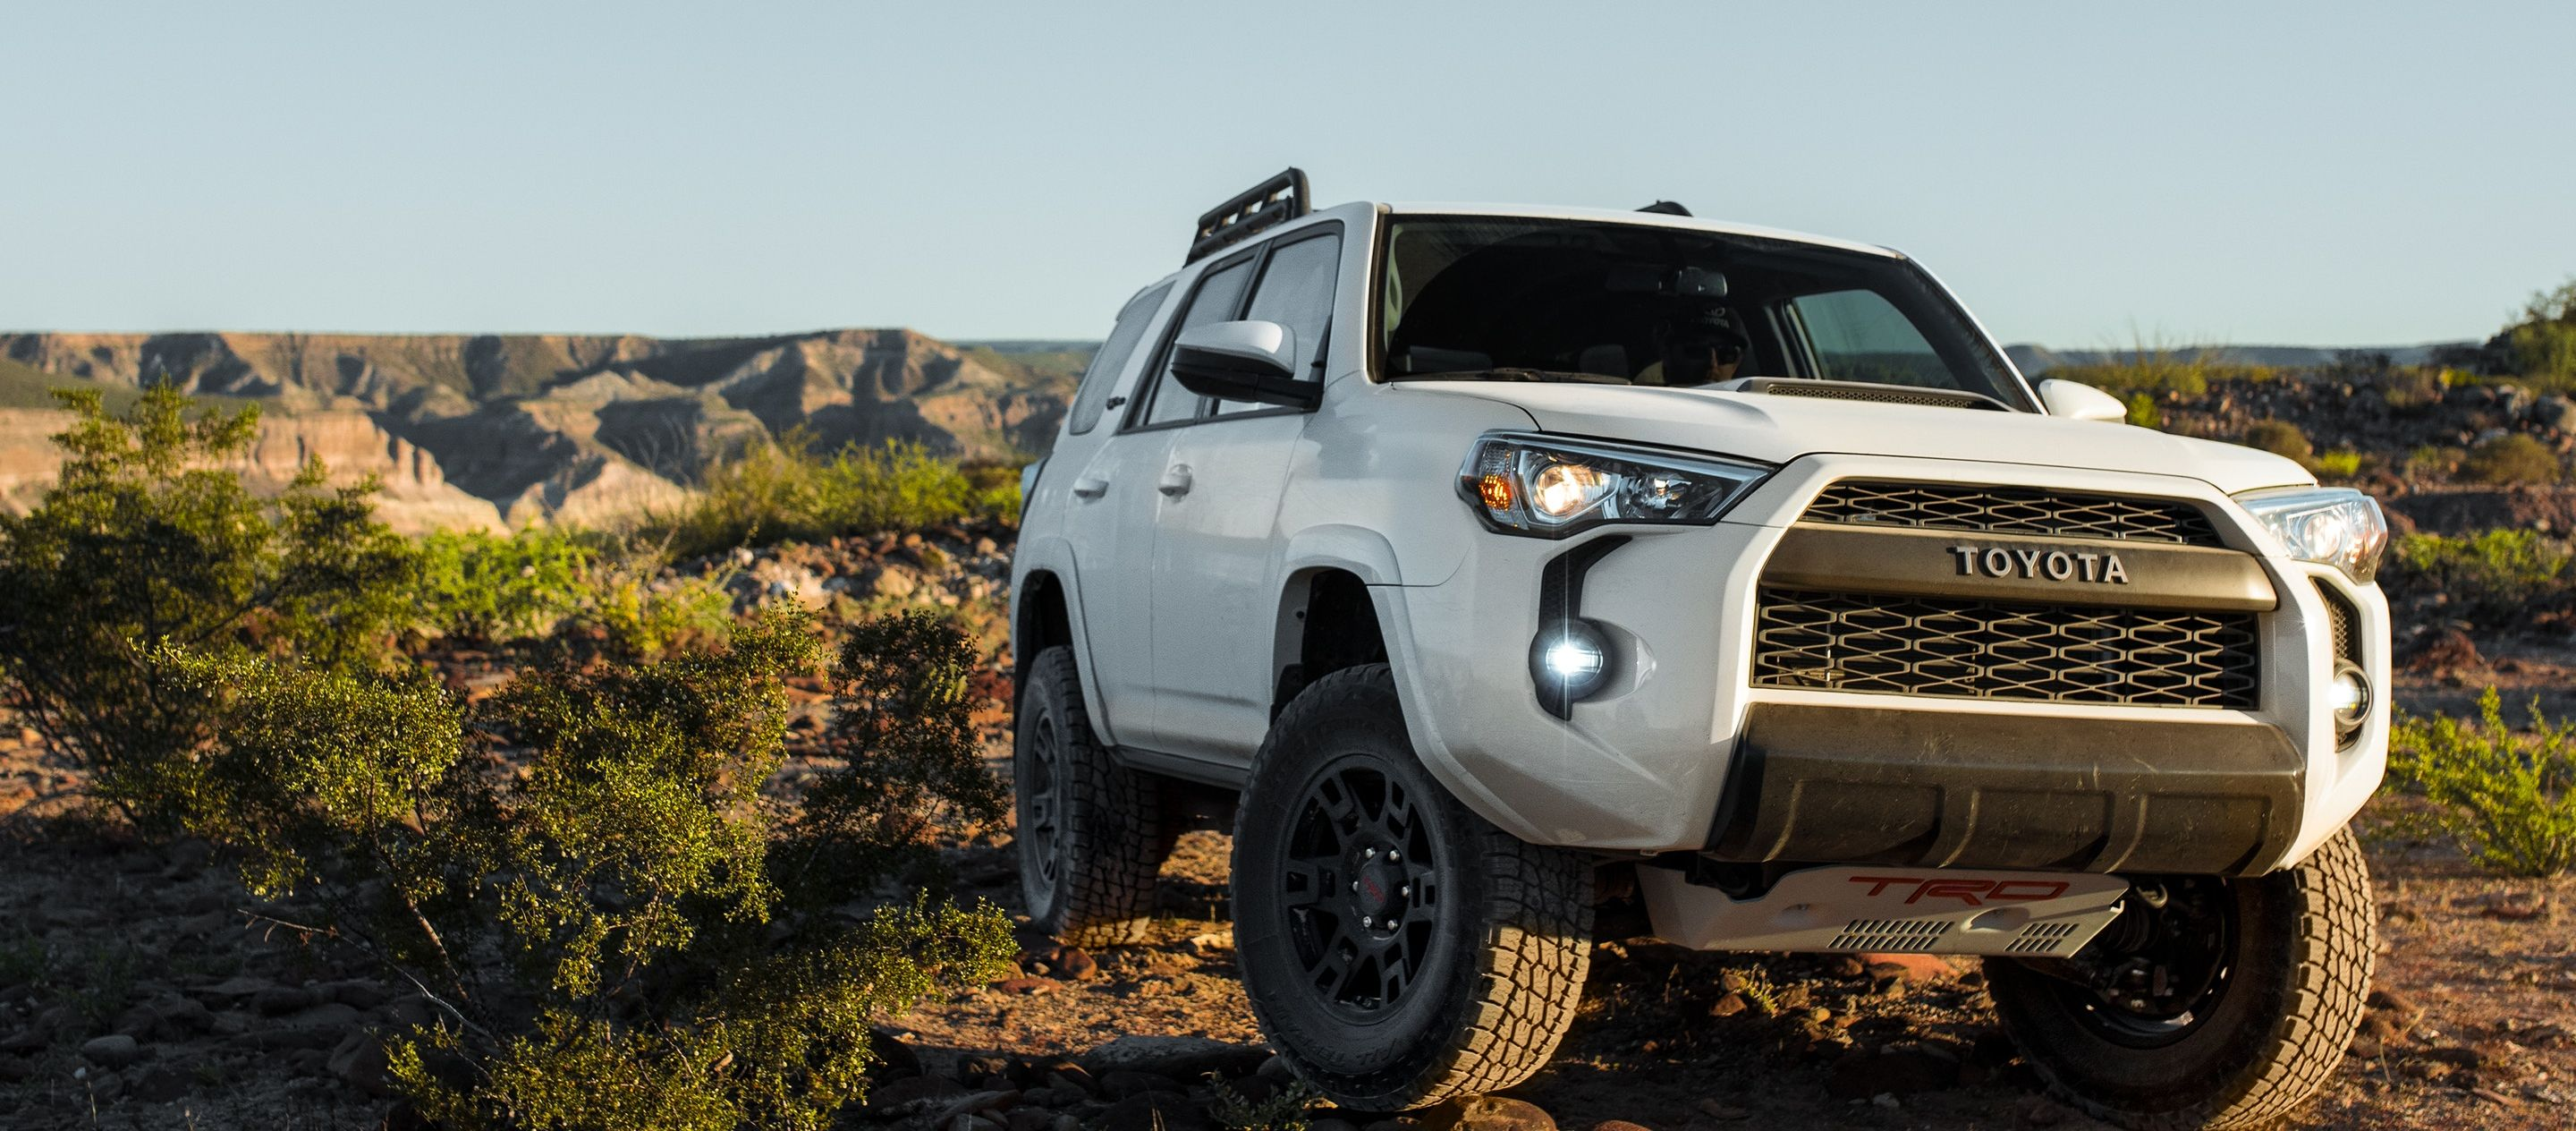 2019 Toyota 4Runner Leasing near Des Moines, IA